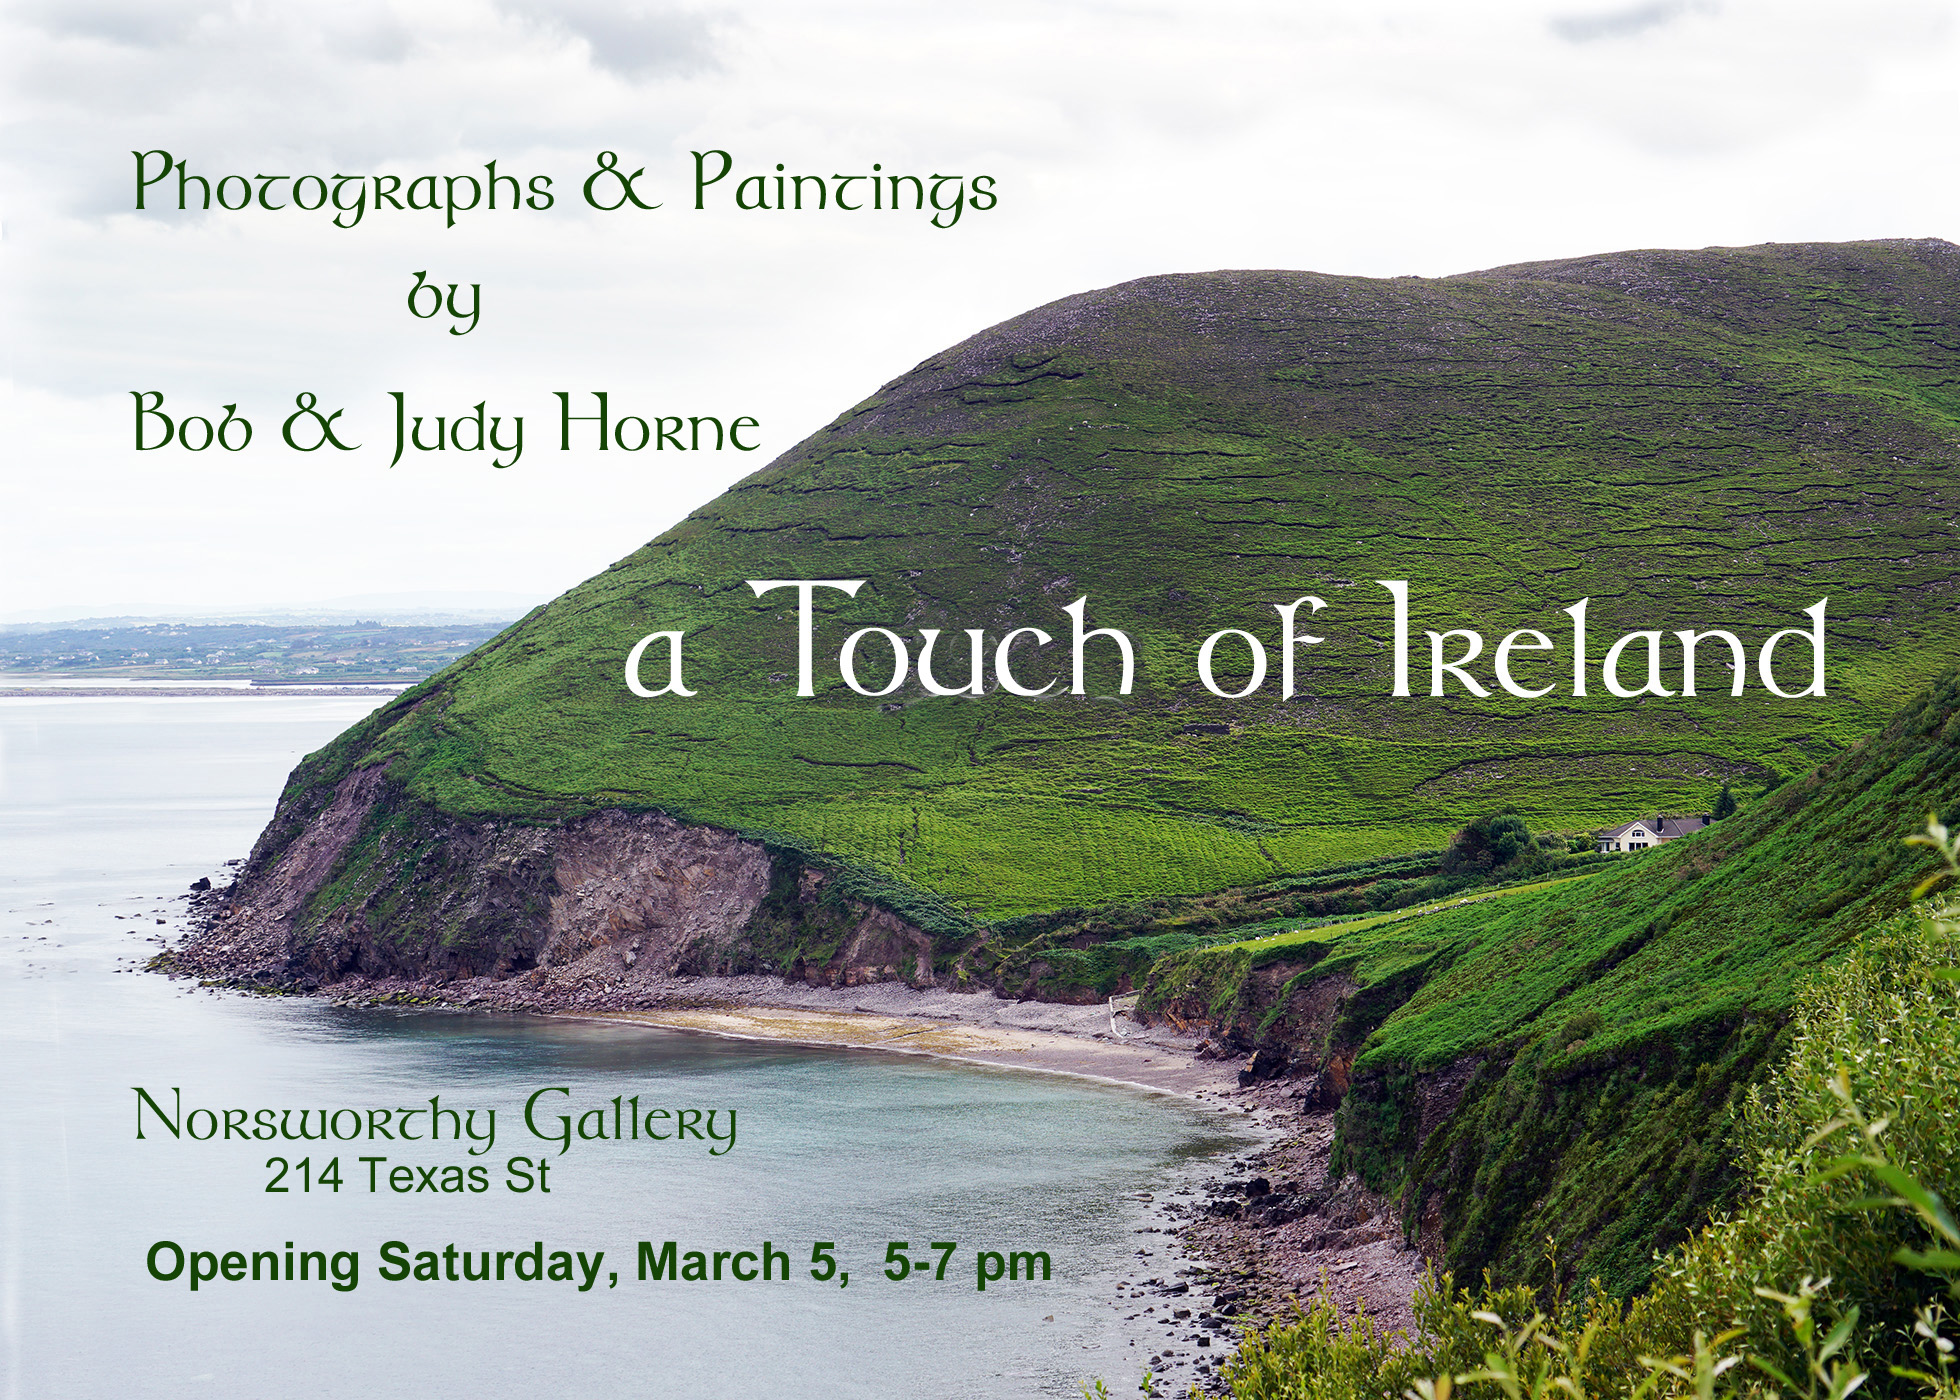 A Touch of Ireland at the Norsworthy Gallery in Shreveport, LA